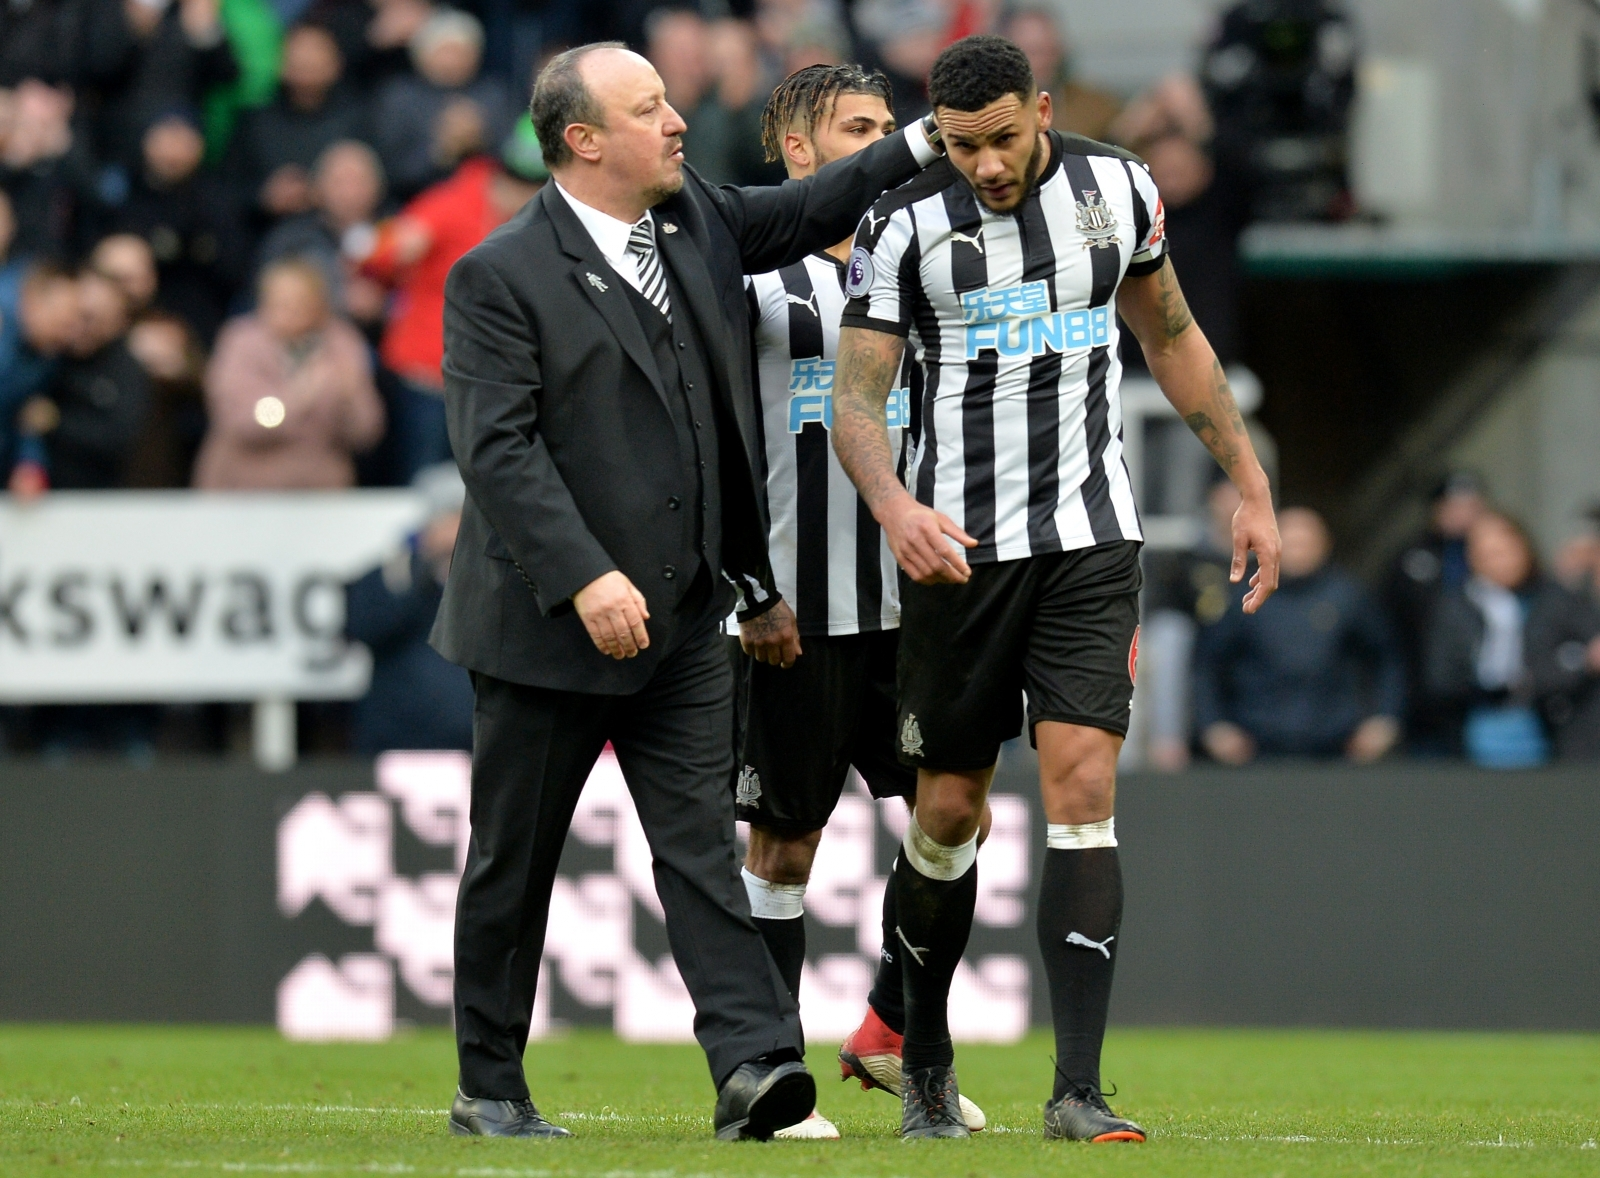 Three players who should definitely start for Newcastle against Bournemouth